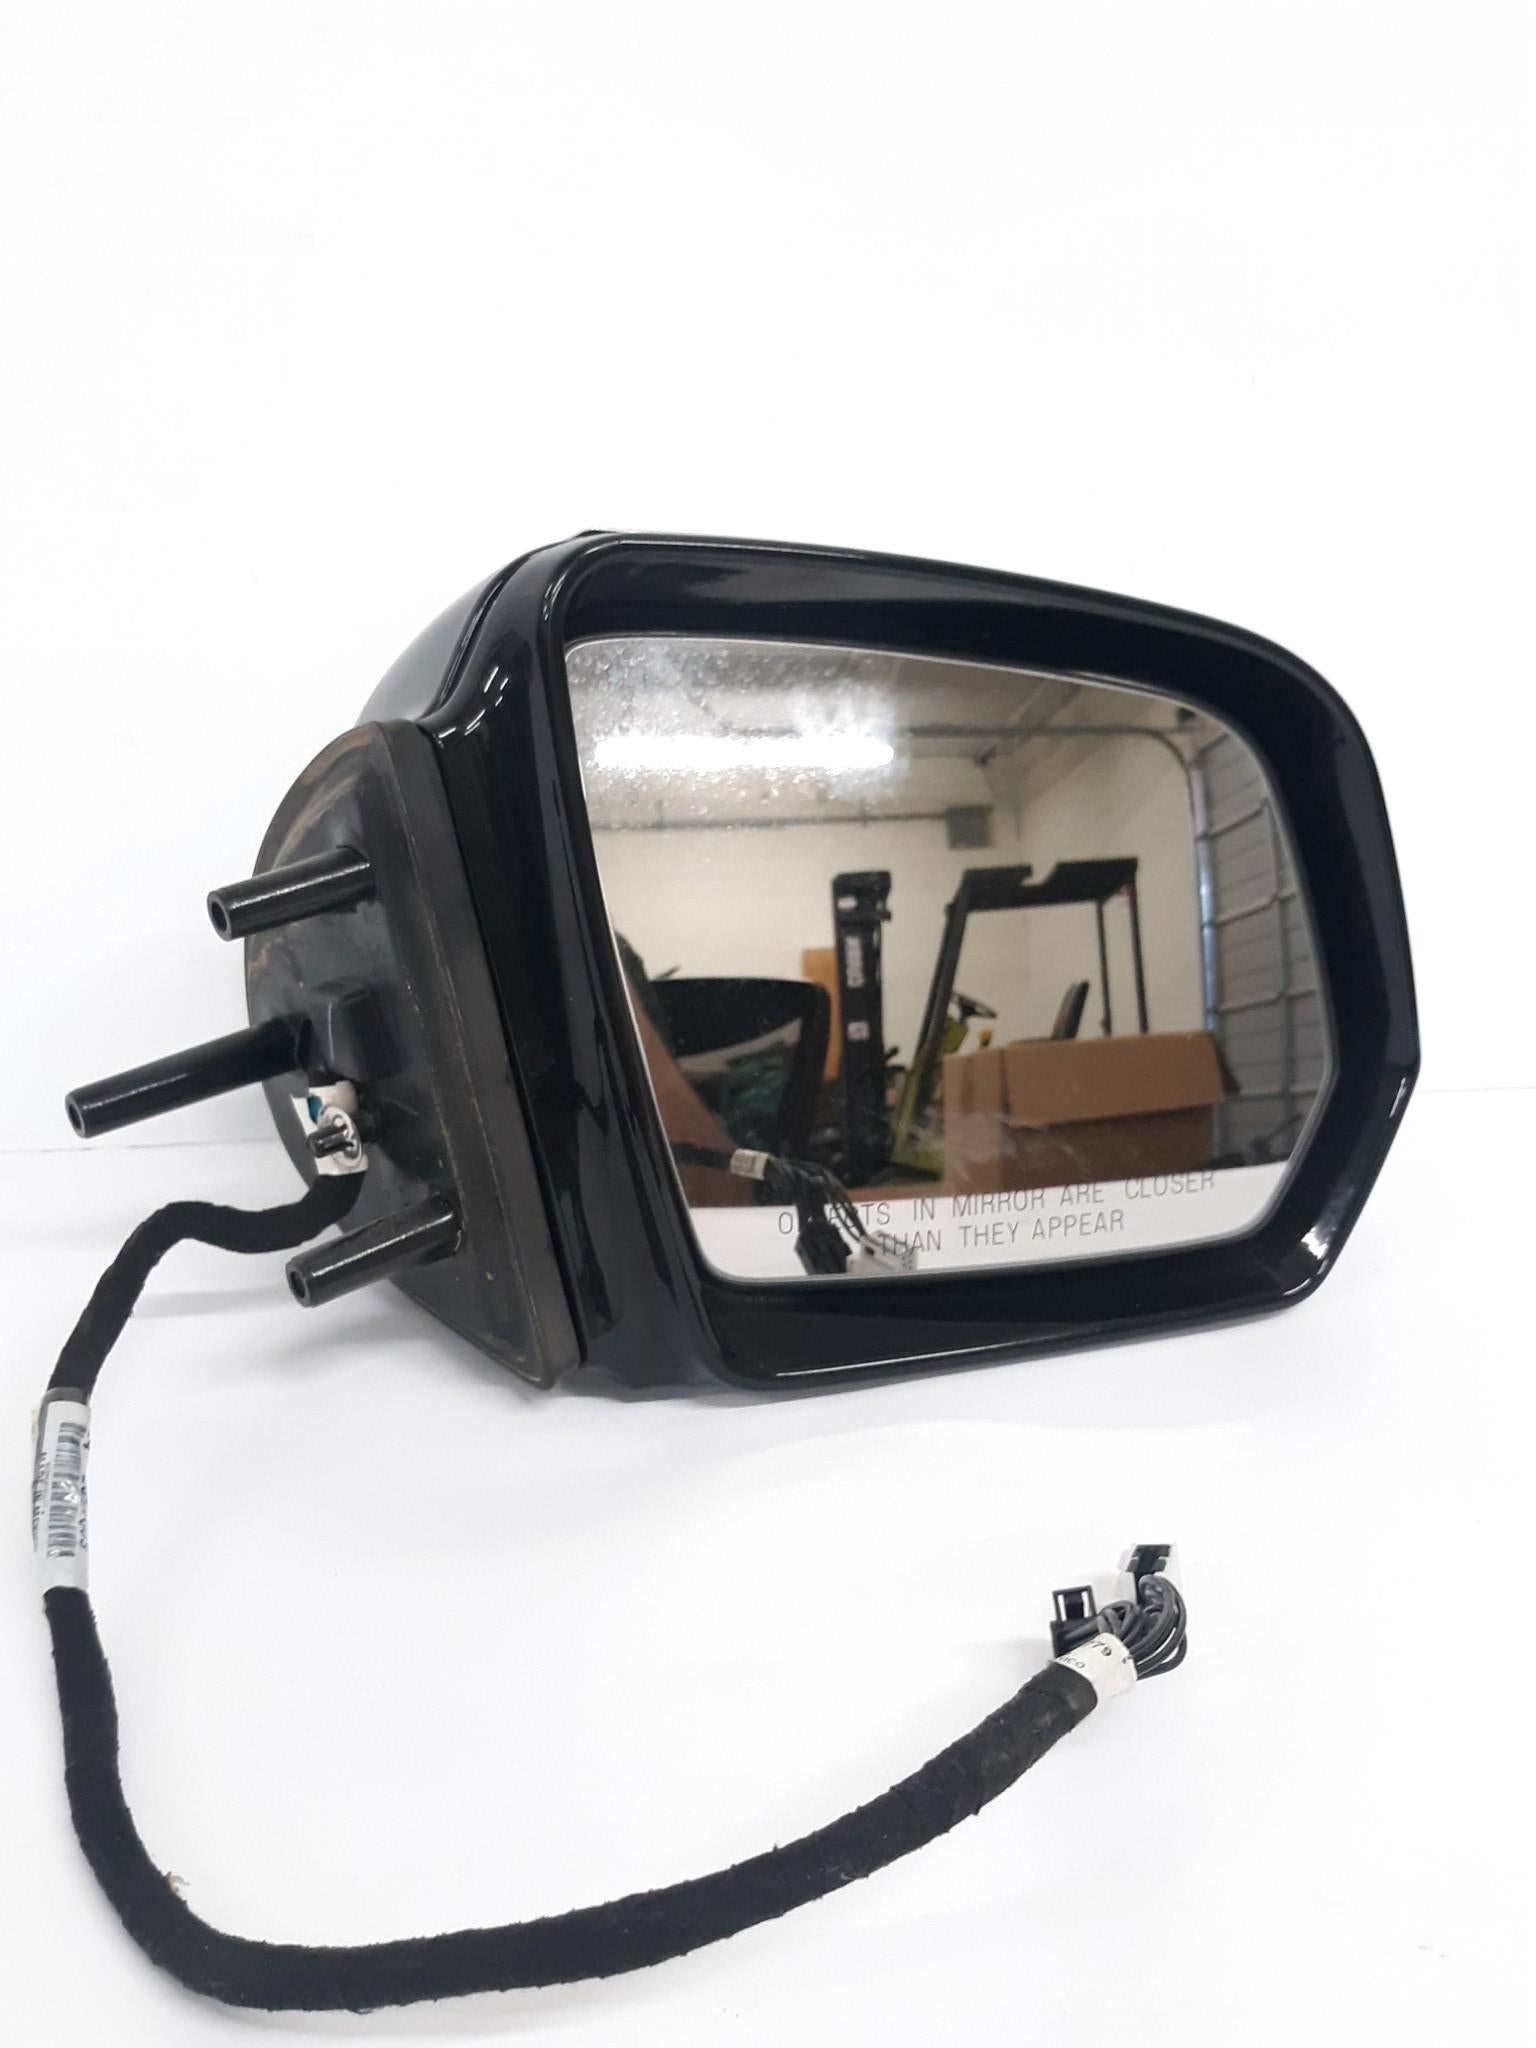 2009-2010 MERCEDES ML350 ML550 GL450 GL550 ML320 RIGHT MIRROR 1648102619 BLACK